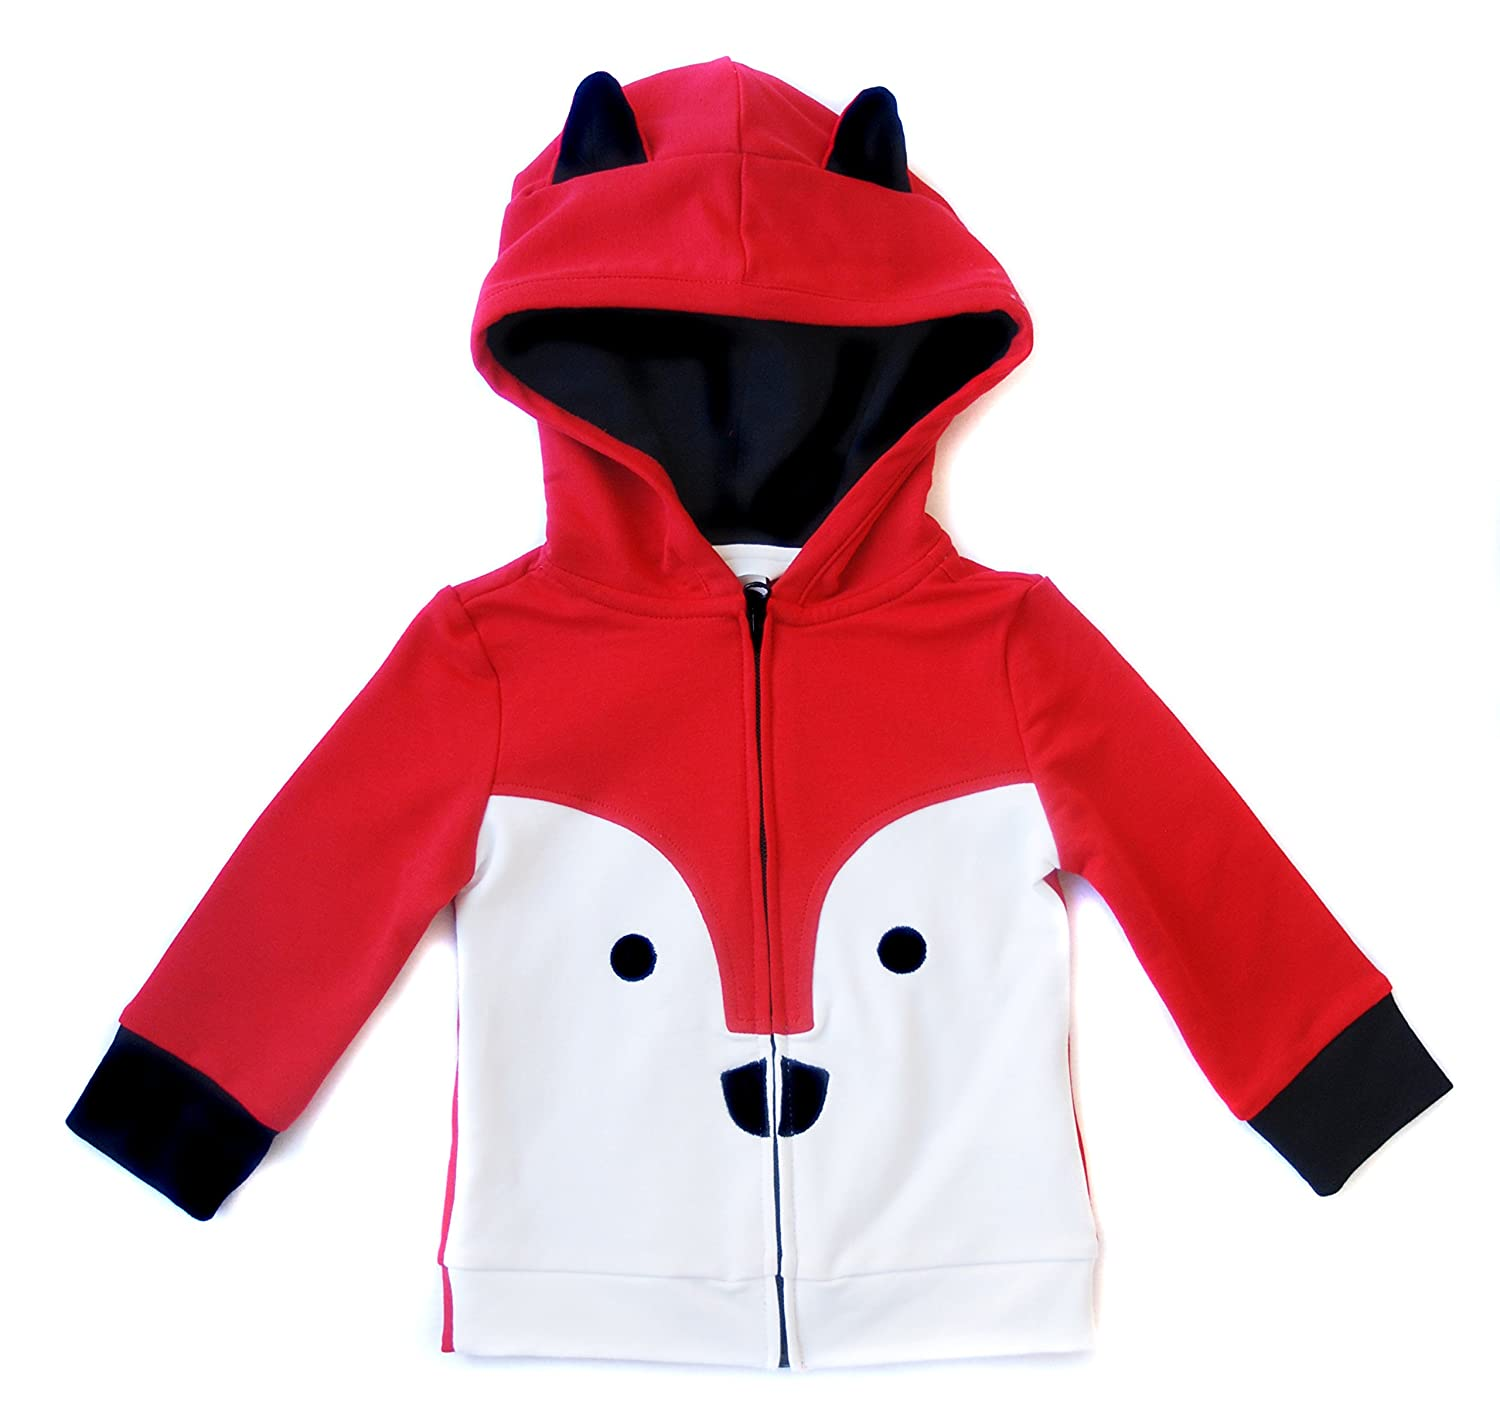 Mini Jiji Stretch Hoodie//Jacket for Baby Infant Toddler Kids